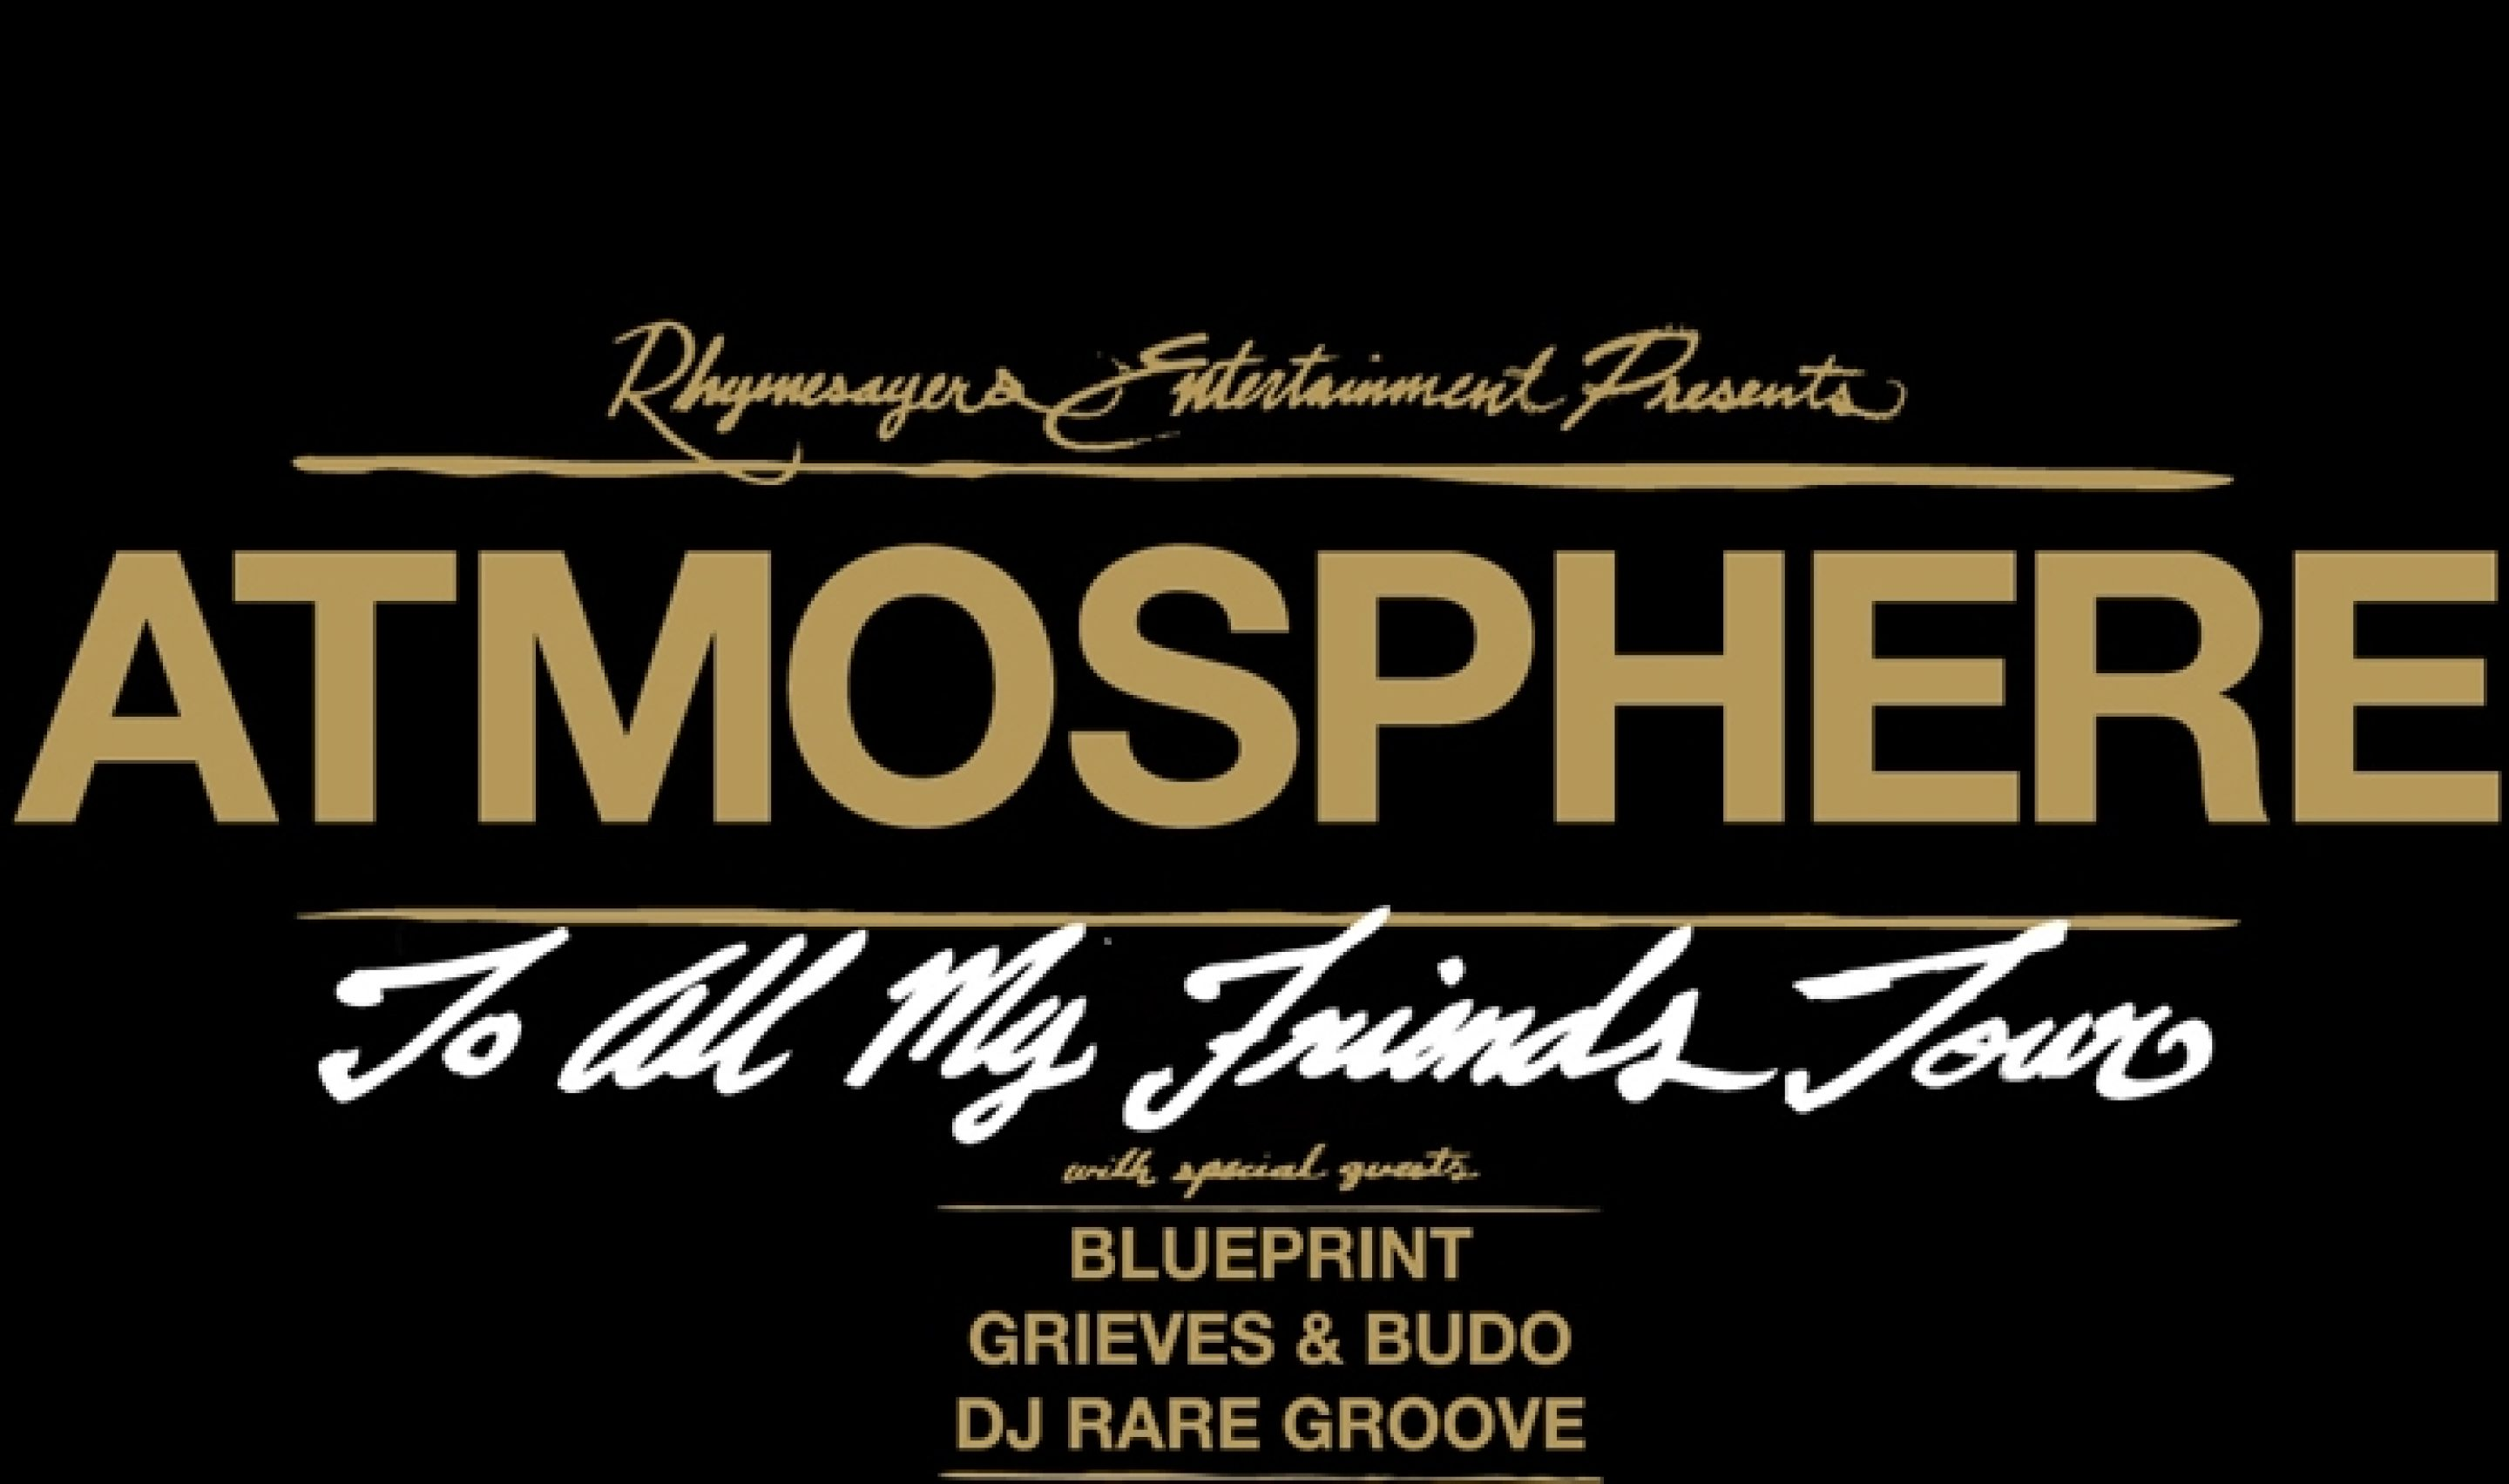 Atmospheres to all my friends tour featuring blueprint grieves atmospheres to all my friends tour featuring blueprint grieves budo and dj rare groove less than 2 weeks away malvernweather Gallery